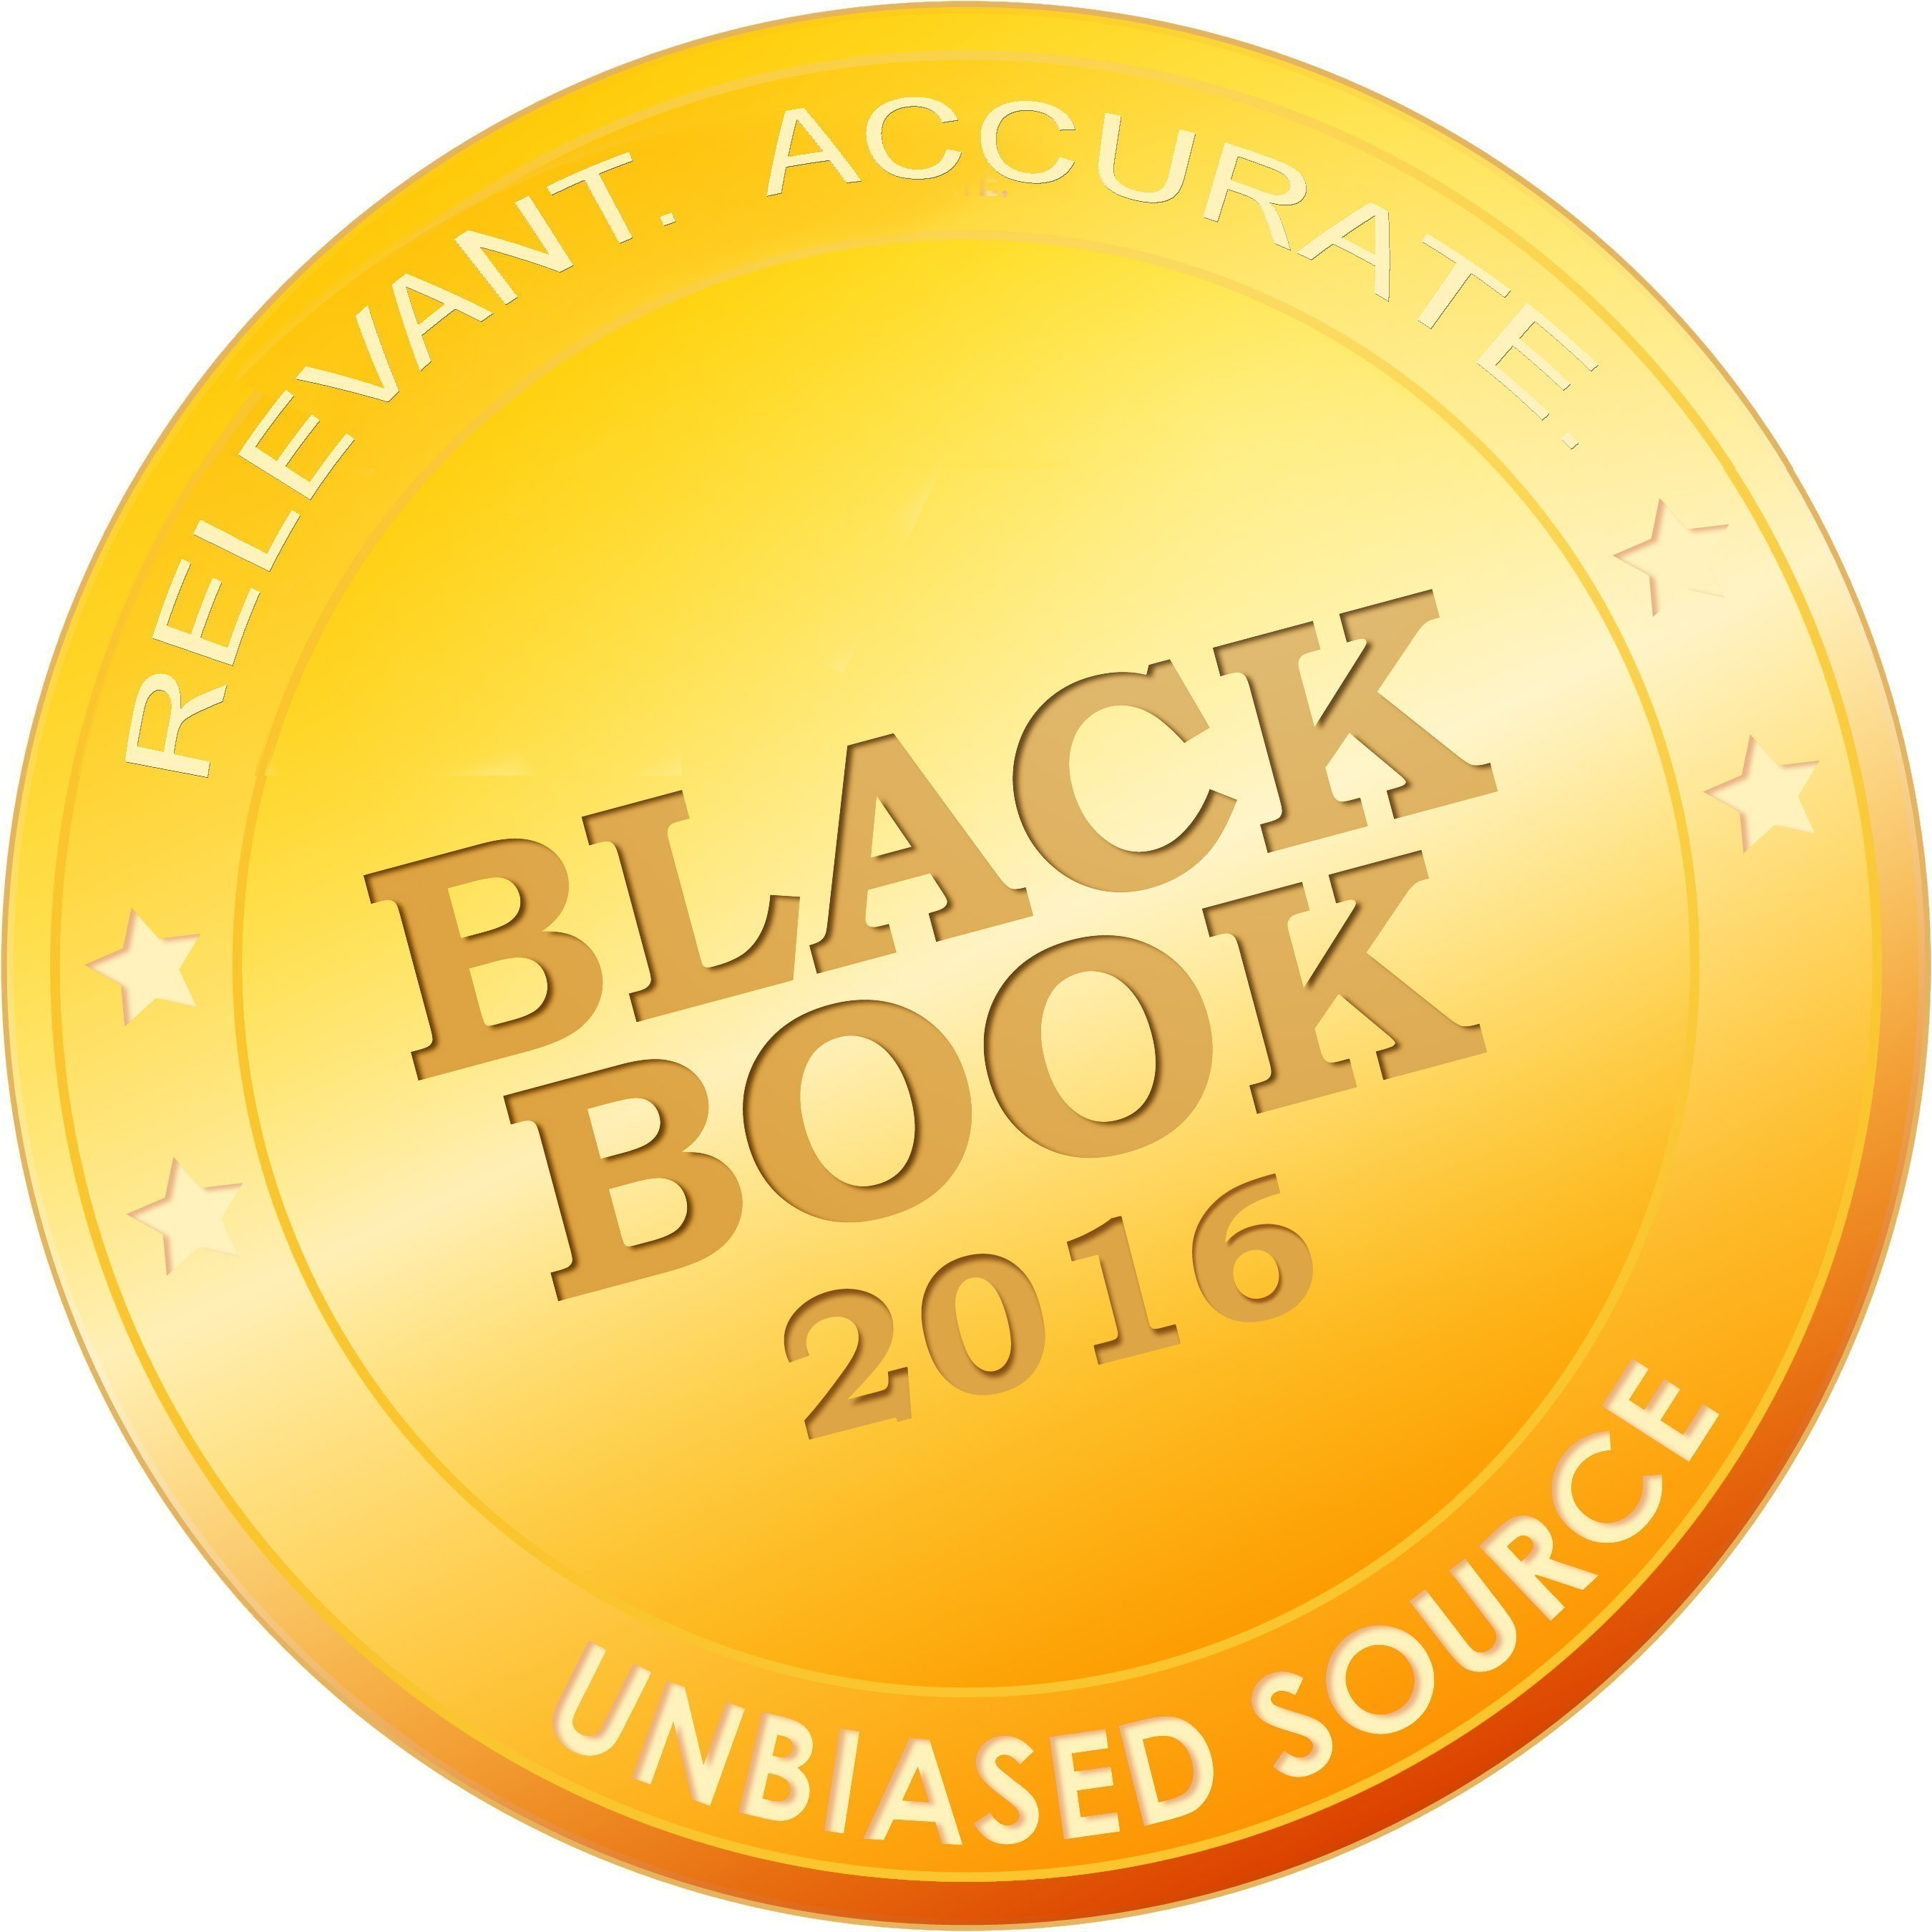 Payers Accelerate Private HIE Executions; Providers Judge HIE Replacements, Middleware and FHIR Options, 2016 Black Book Interoperability Survey